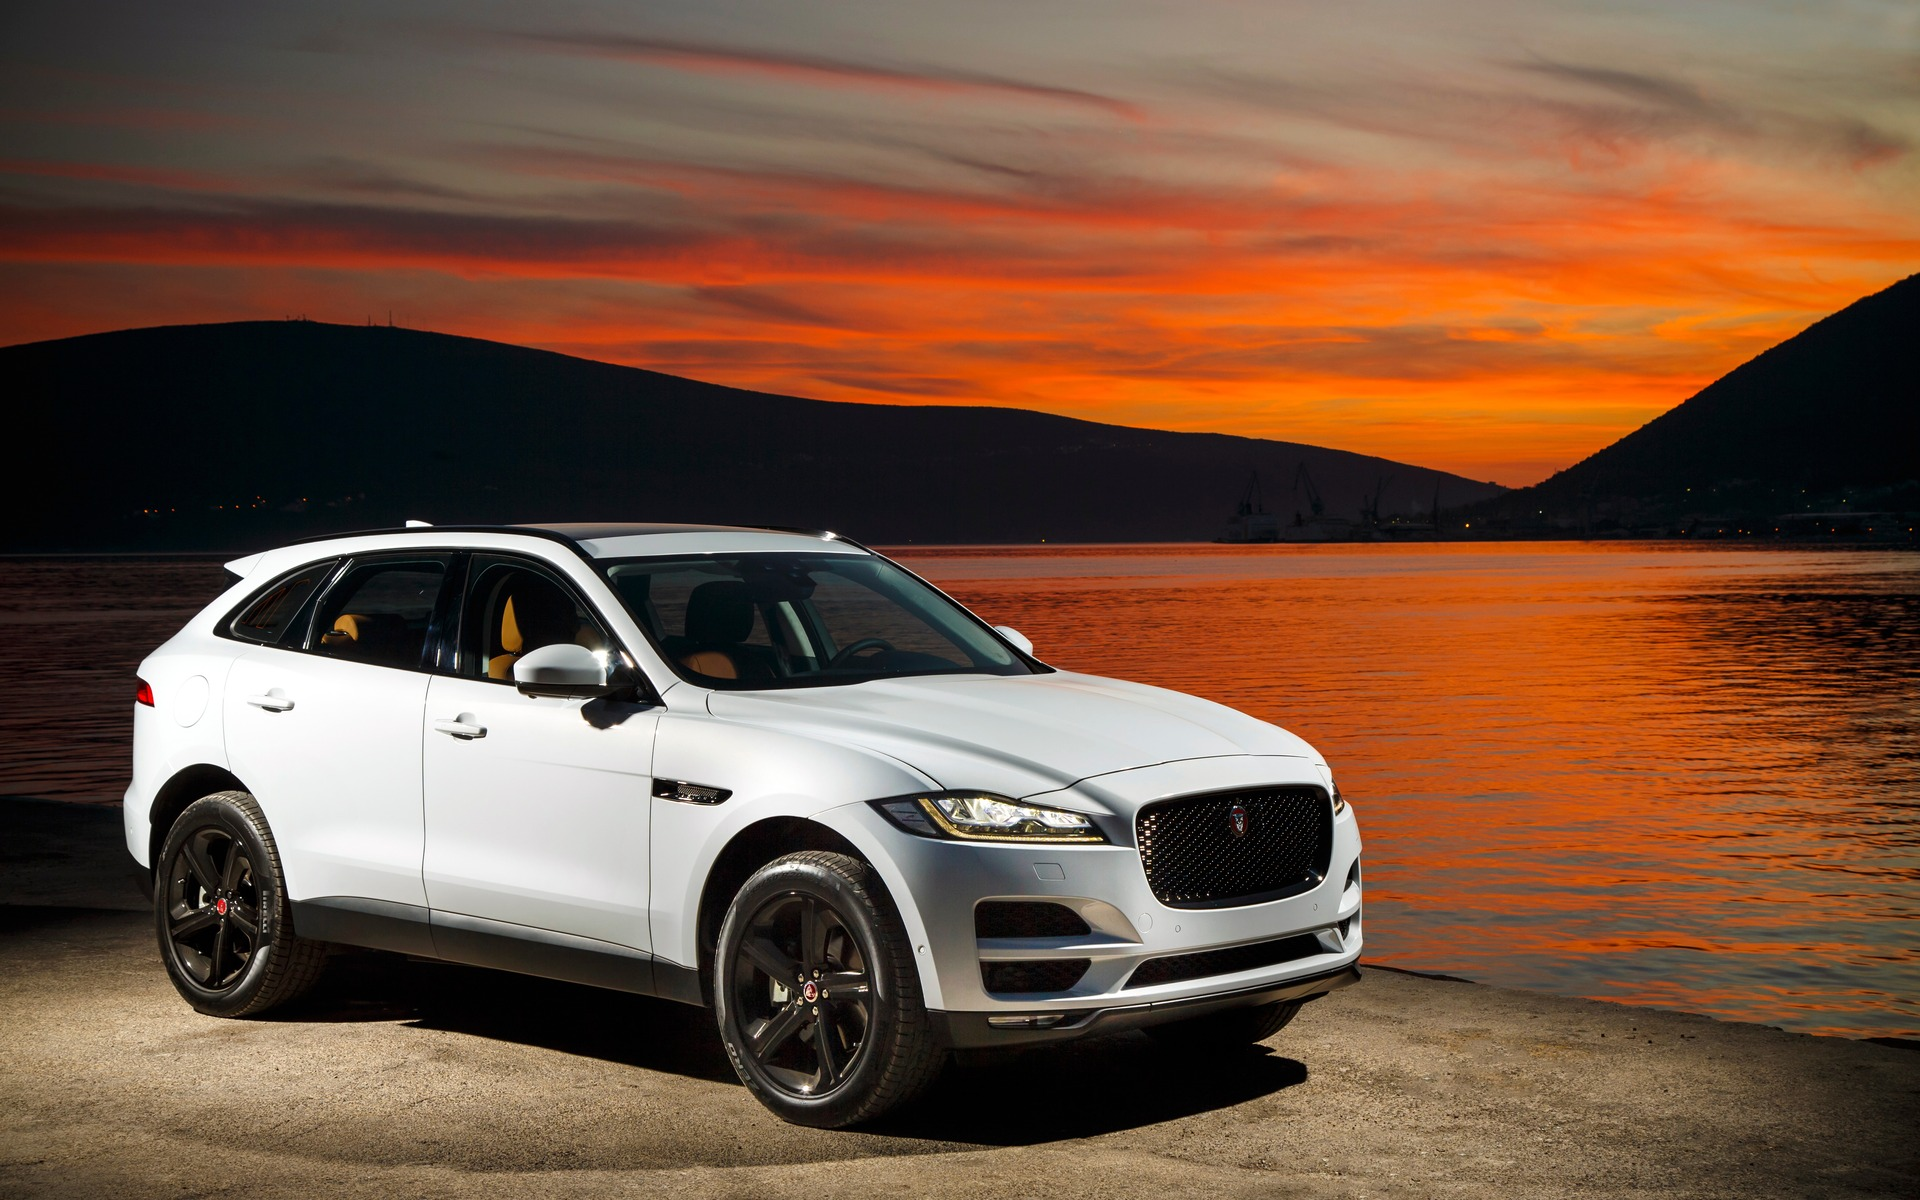 new base powertrain for the 2018 jaguar f pace xe and xf models the car guide. Black Bedroom Furniture Sets. Home Design Ideas